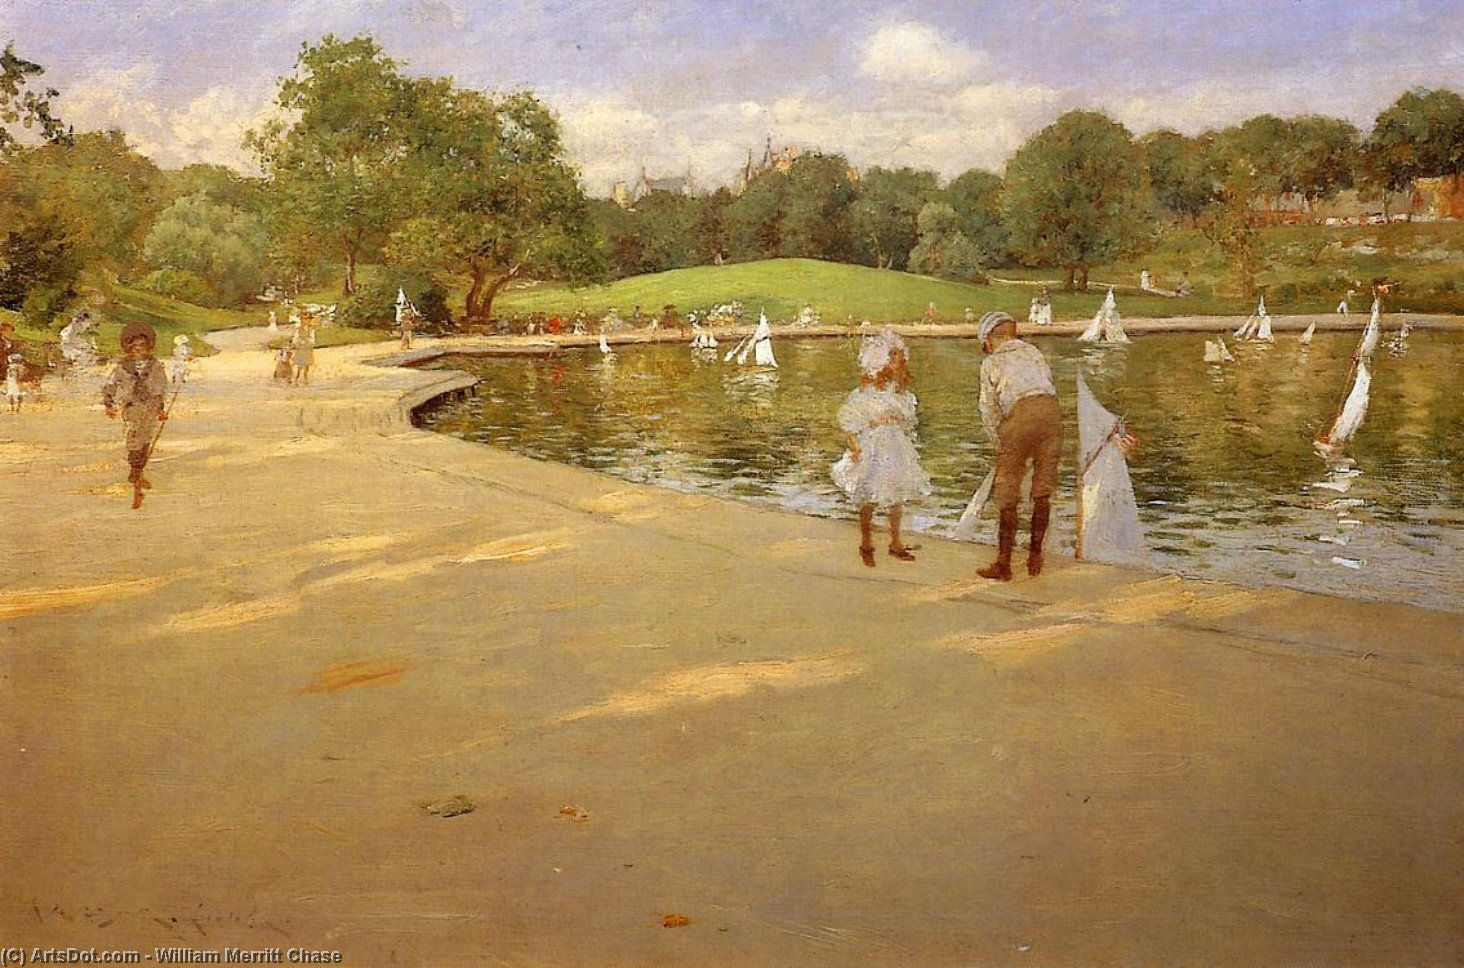 The Lake for Miniature Yachts, Oil On Canvas by William Merritt Chase (1849-1916, United States)